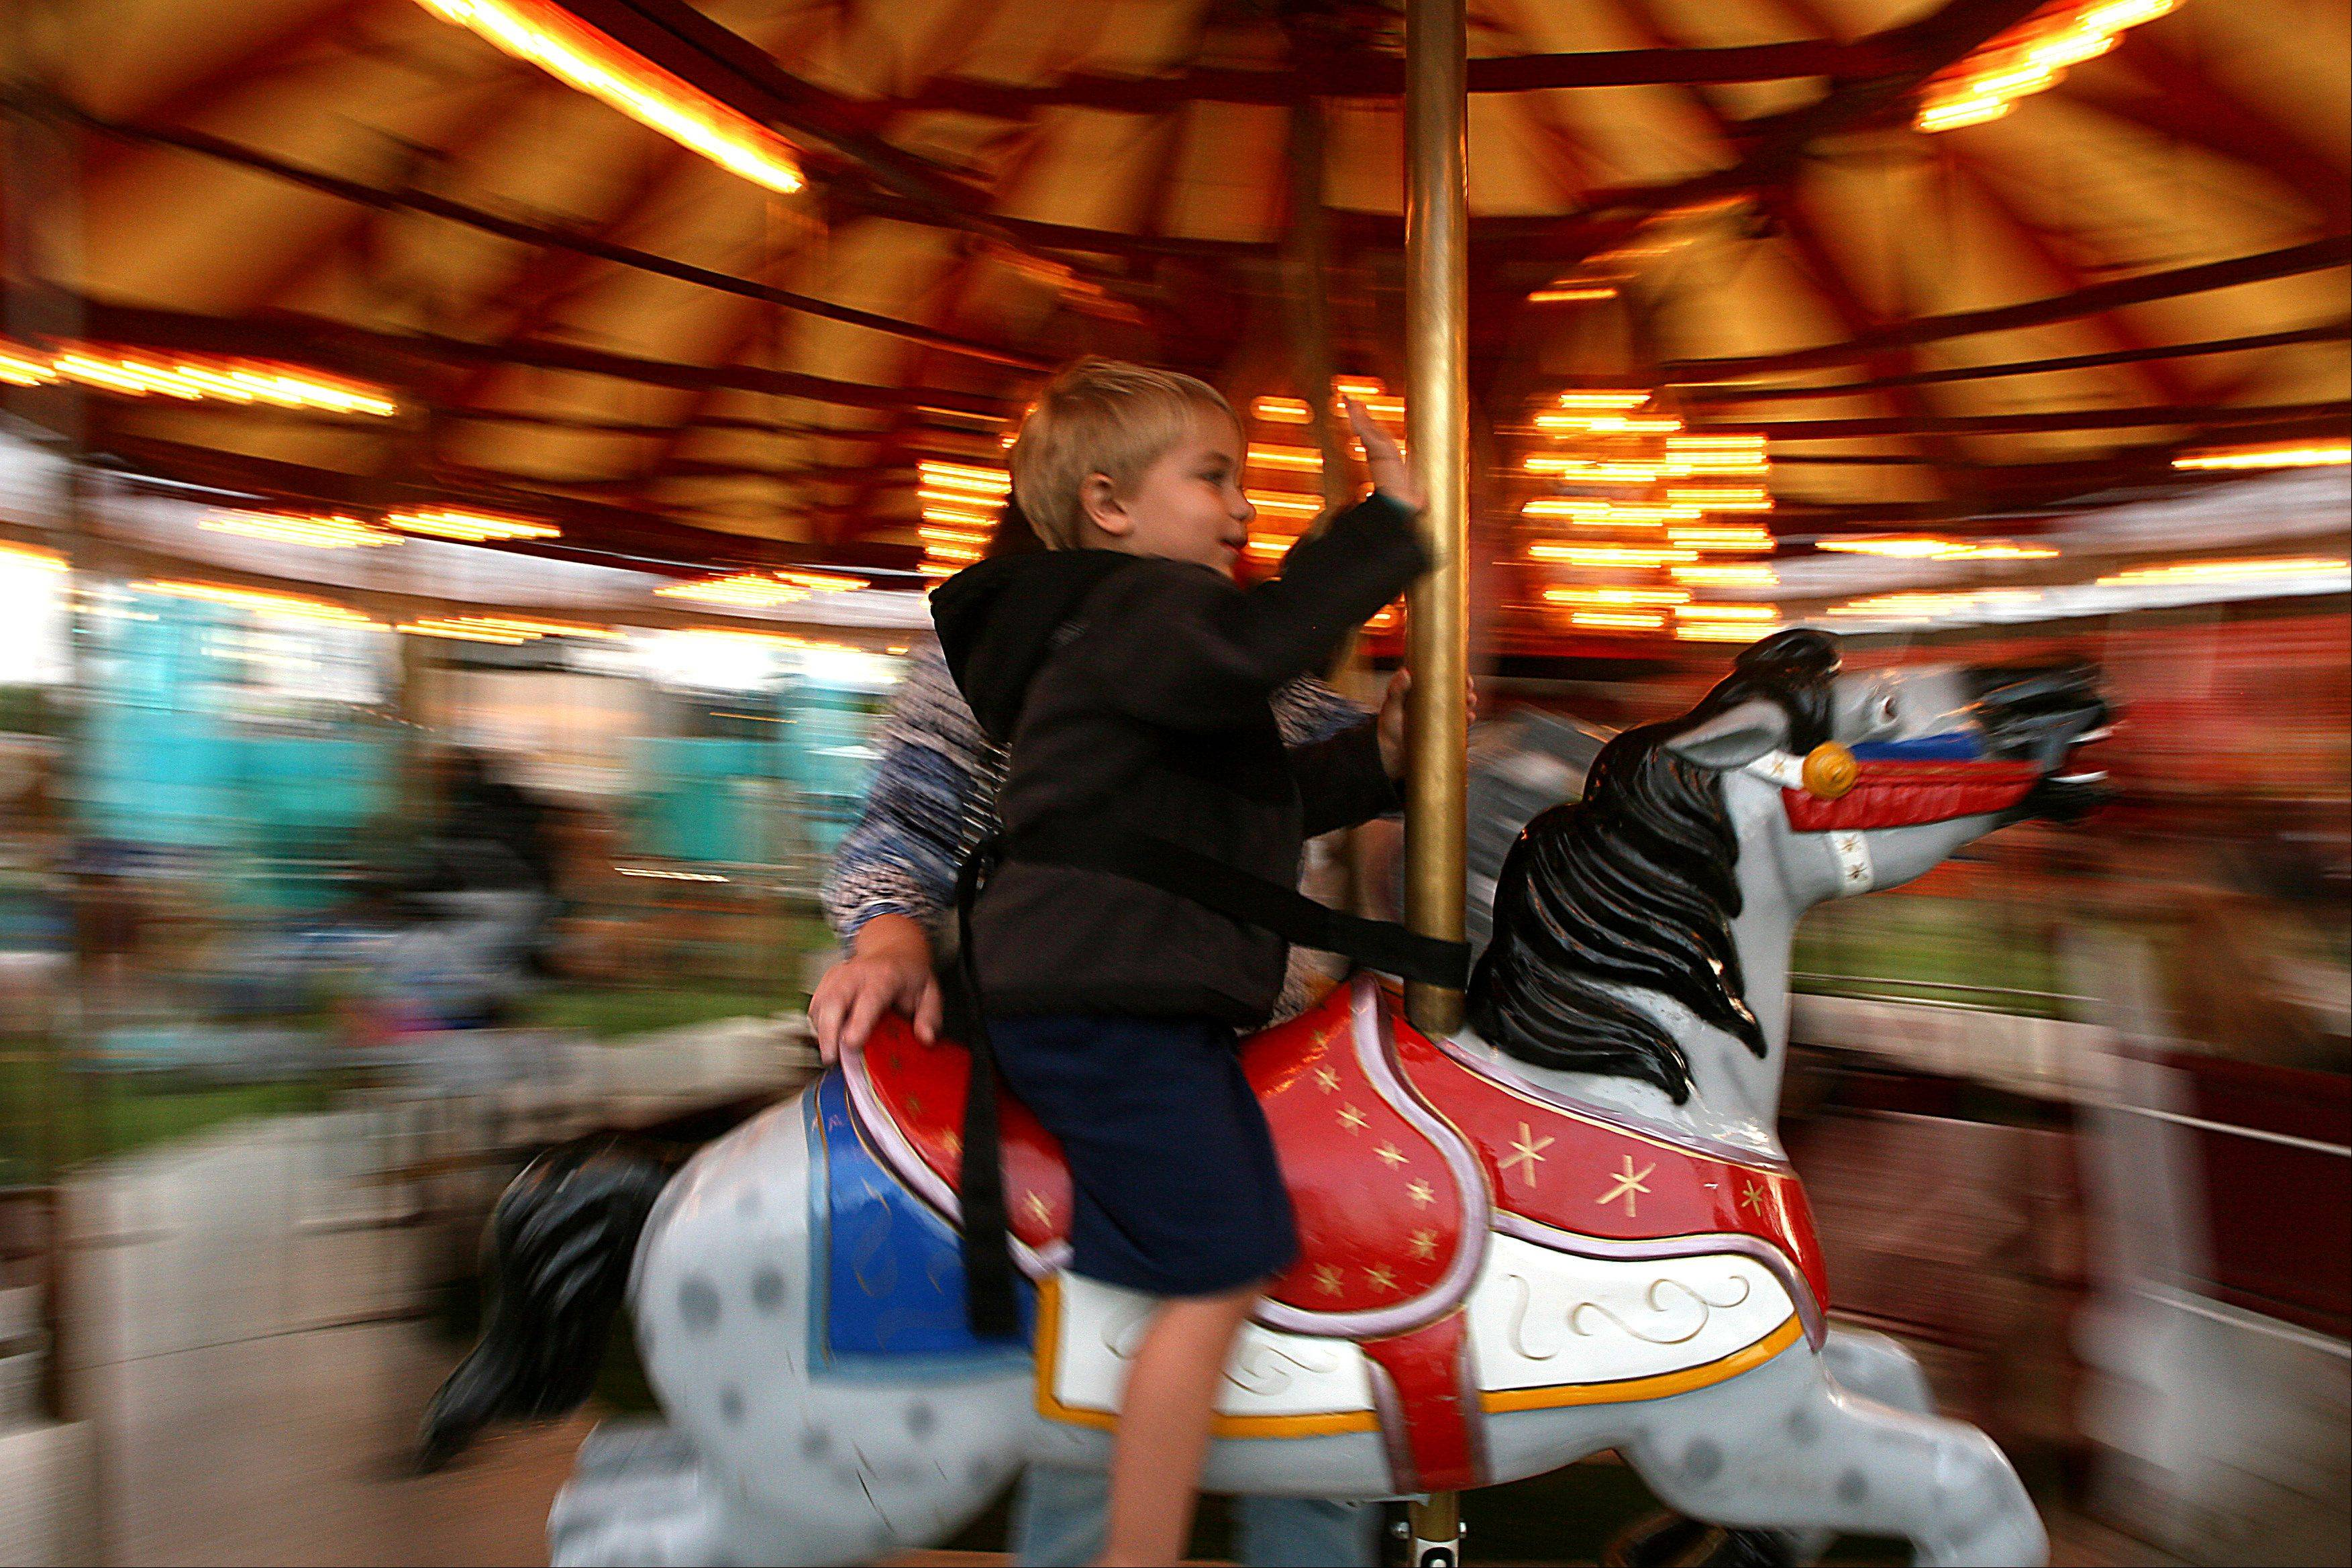 Kian Burkett, 3, waves as he rides the merry-go-round with his mom Heather during South Elgin Riverfest Express festival Thursday night at Panton Mill Park.